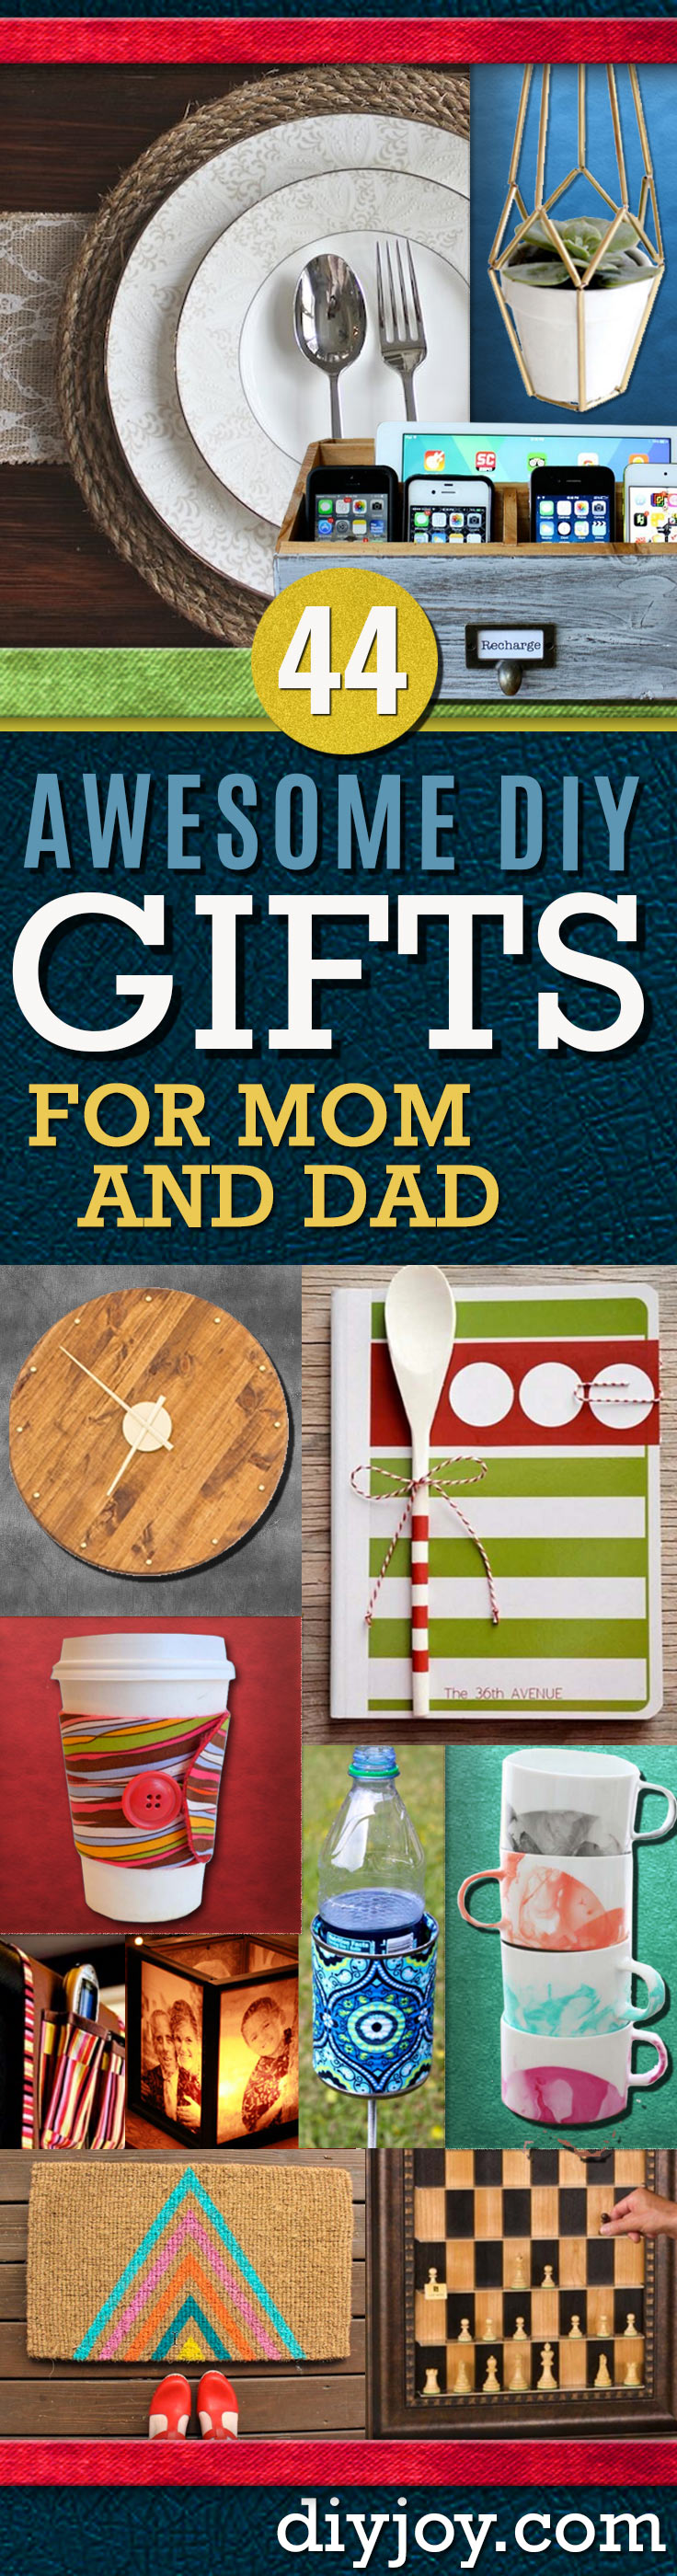 diy gifts for mom and dad homemade christmas gift ideas for your parents cool - Cheap Christmas Gifts For Dad